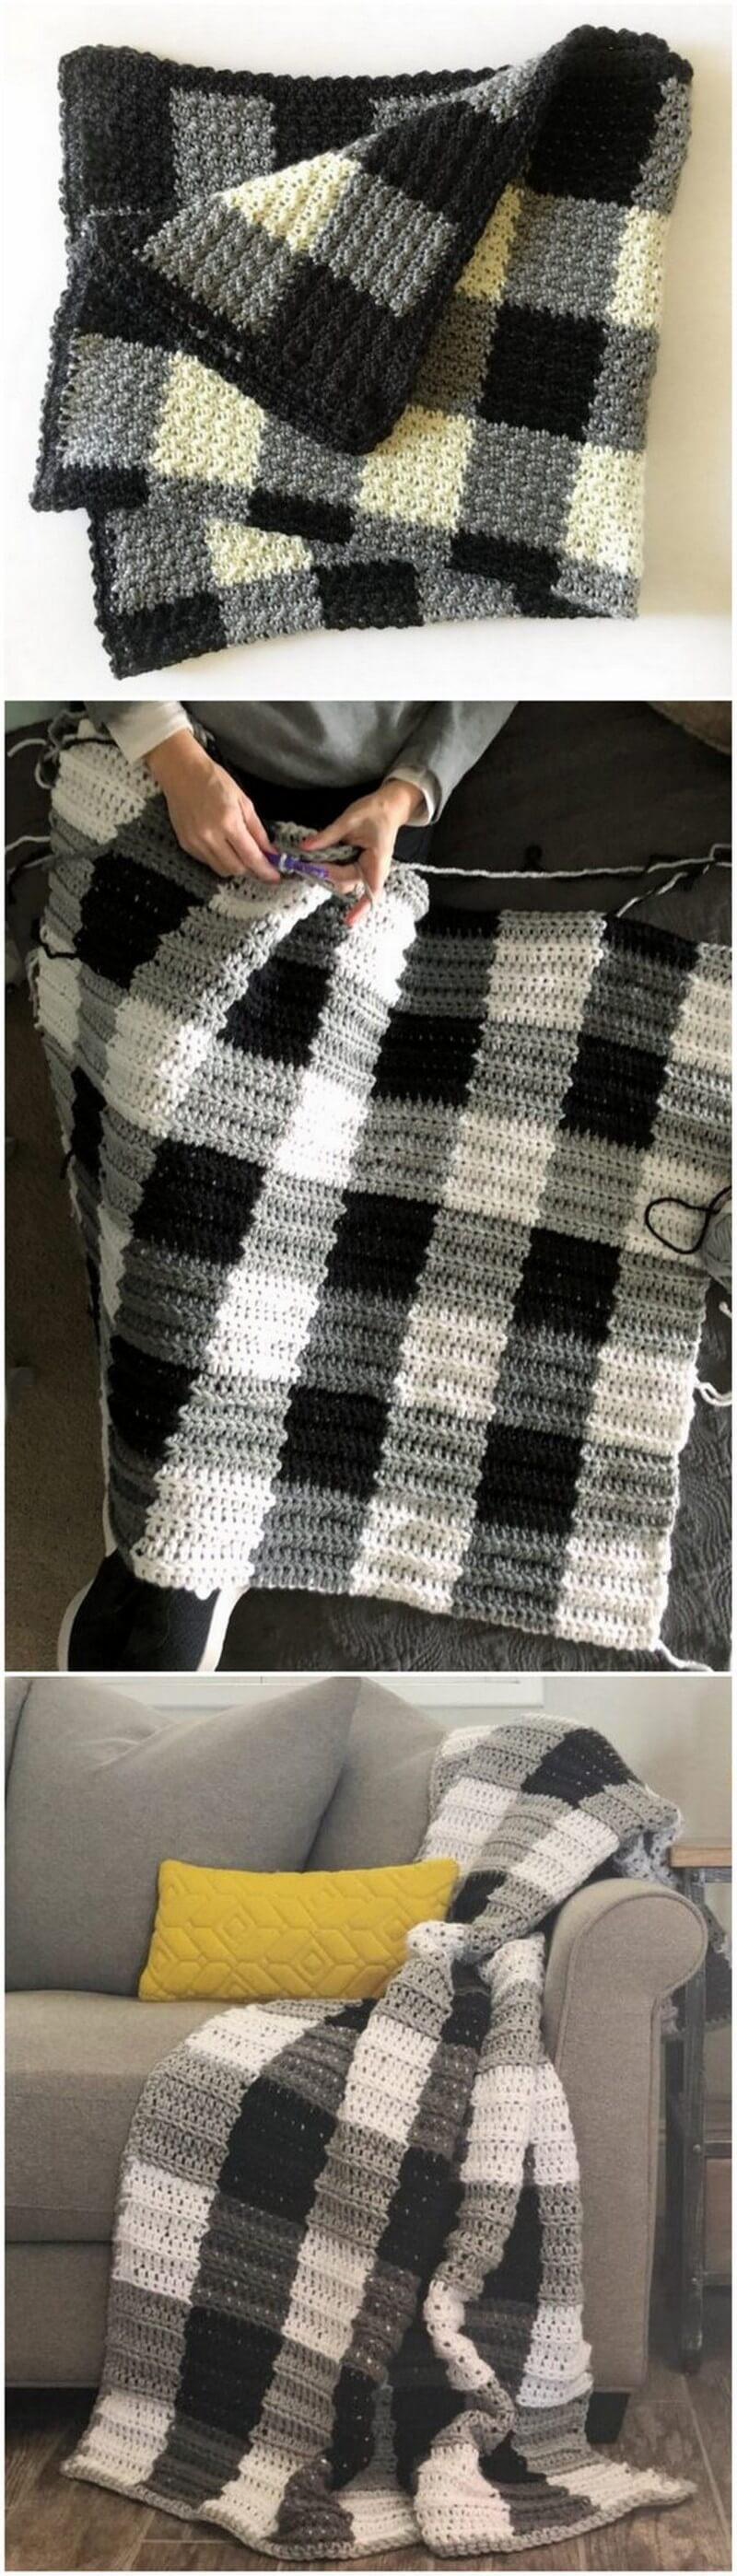 Easy Crochet Blanket Pattern (6)